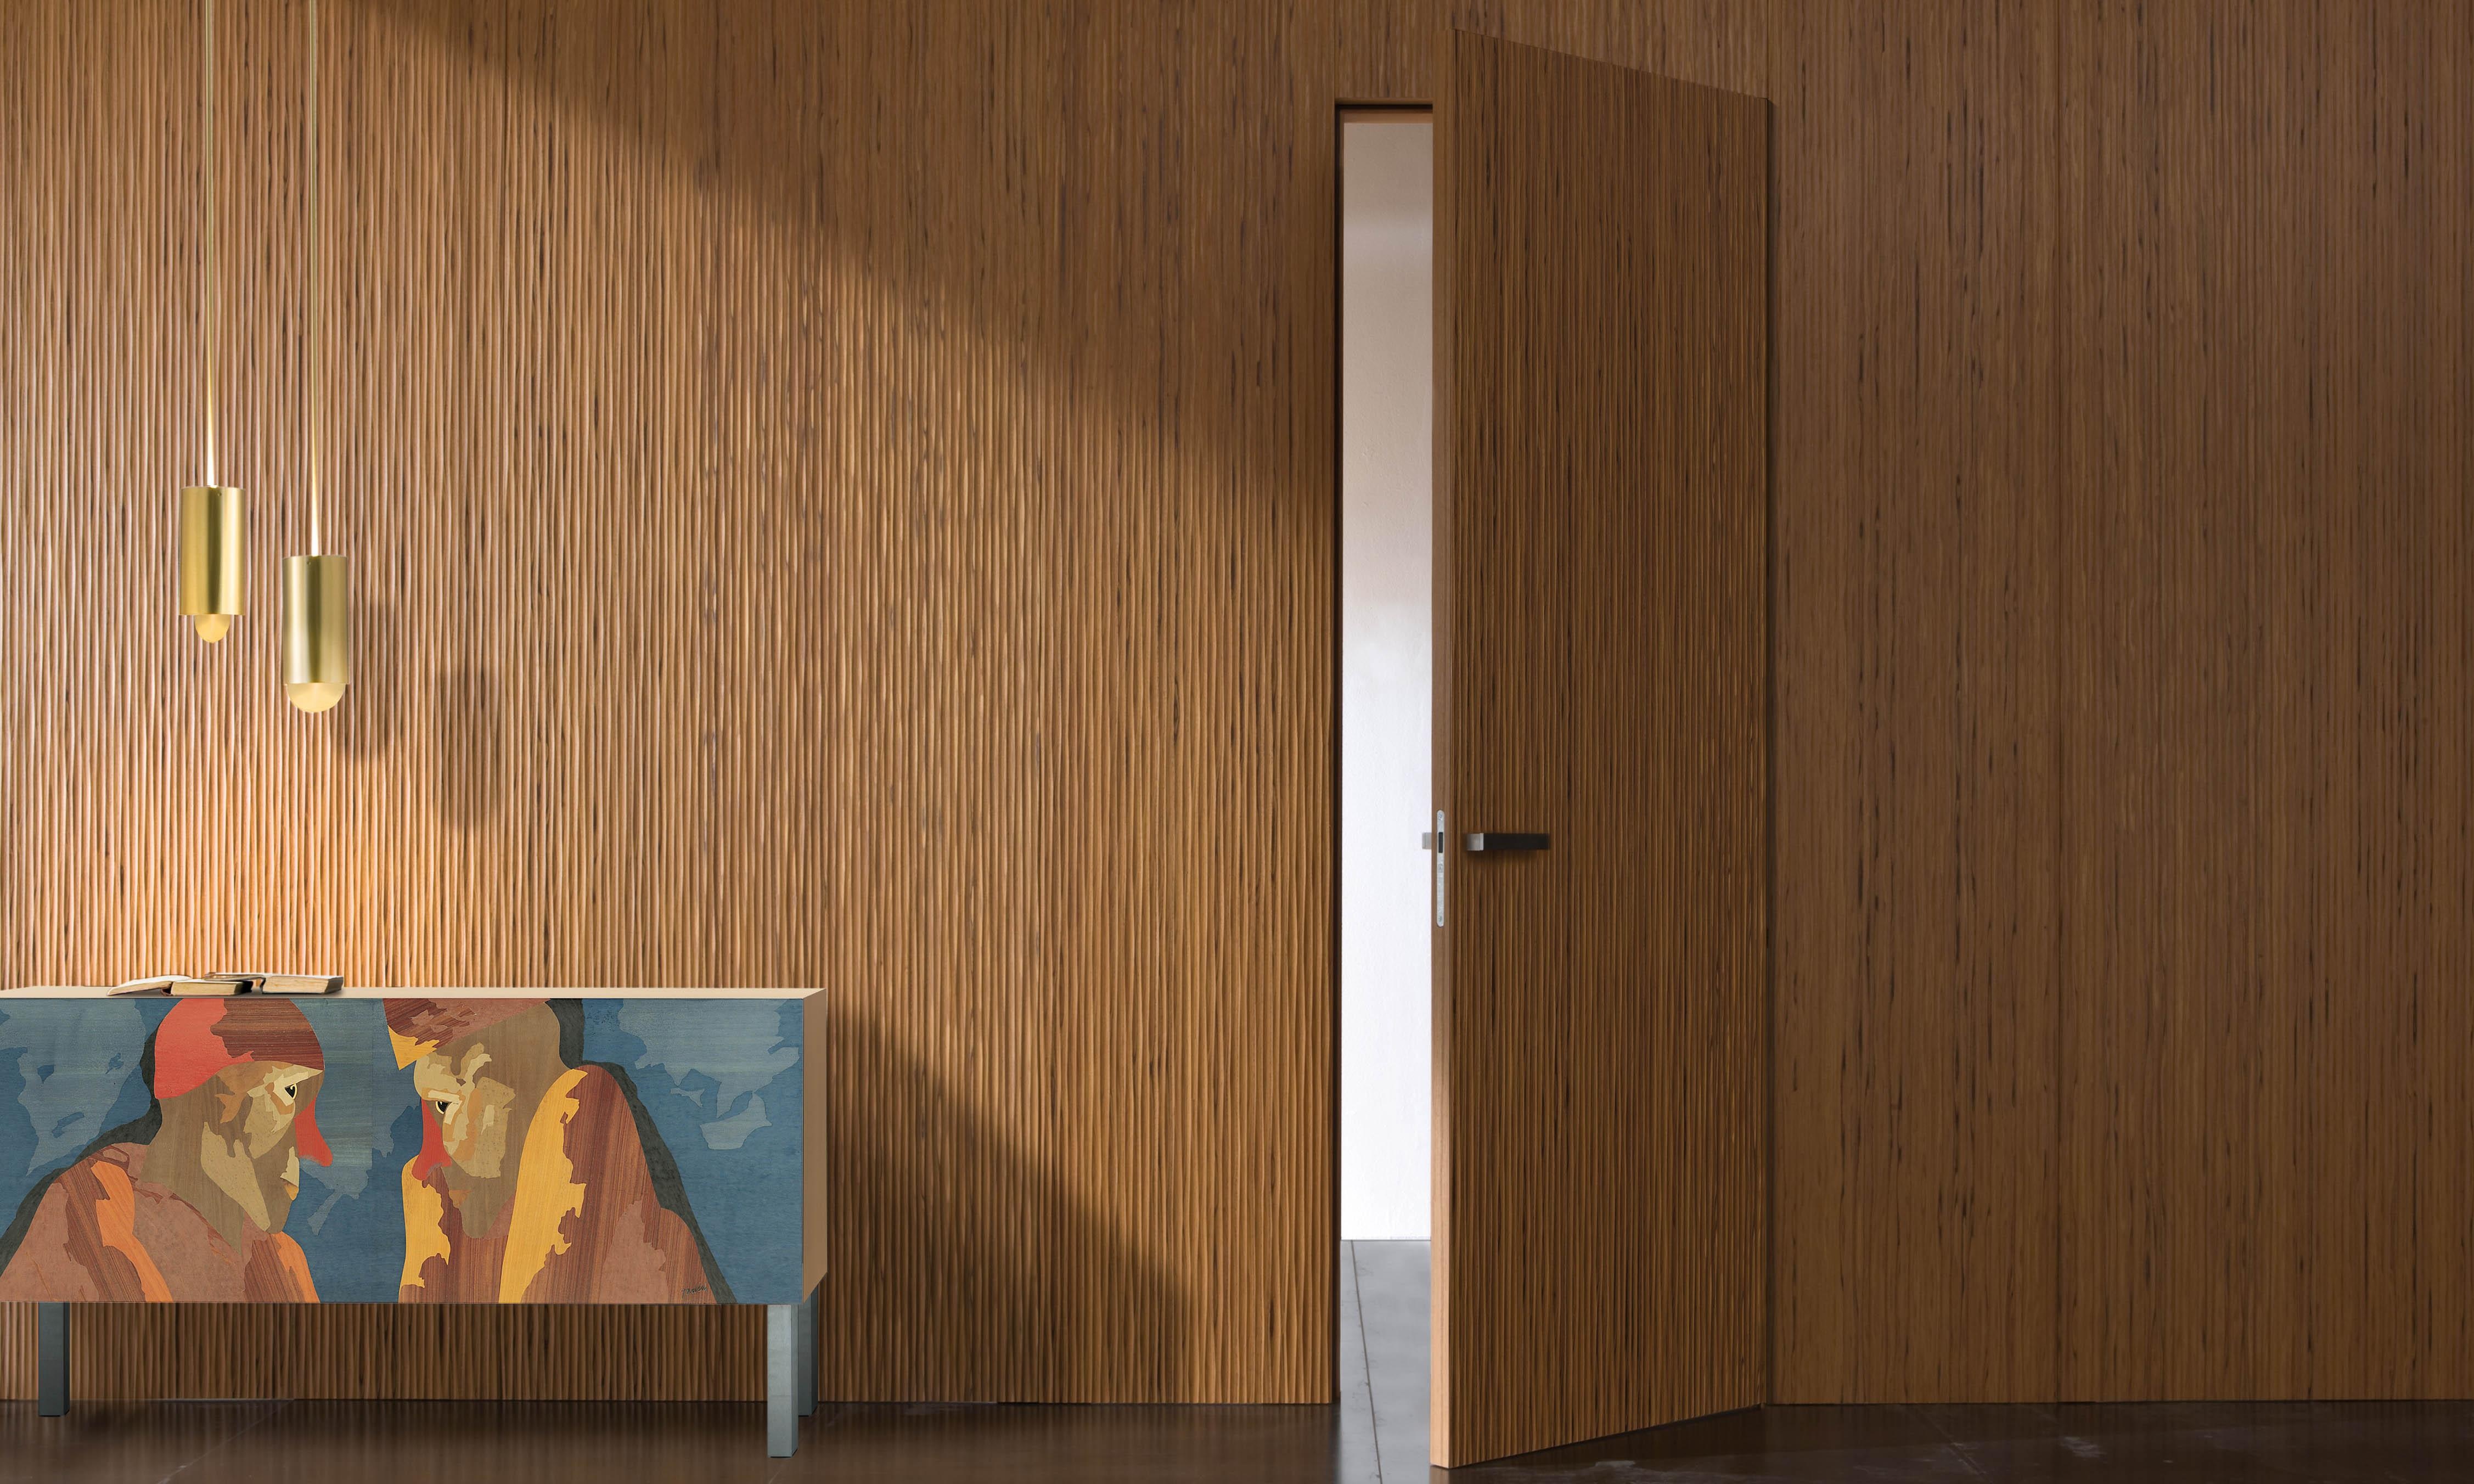 Laurameroni limited edition sideboard in inlaid wood by Emilio Tadini for an artistic and exclusive interior design